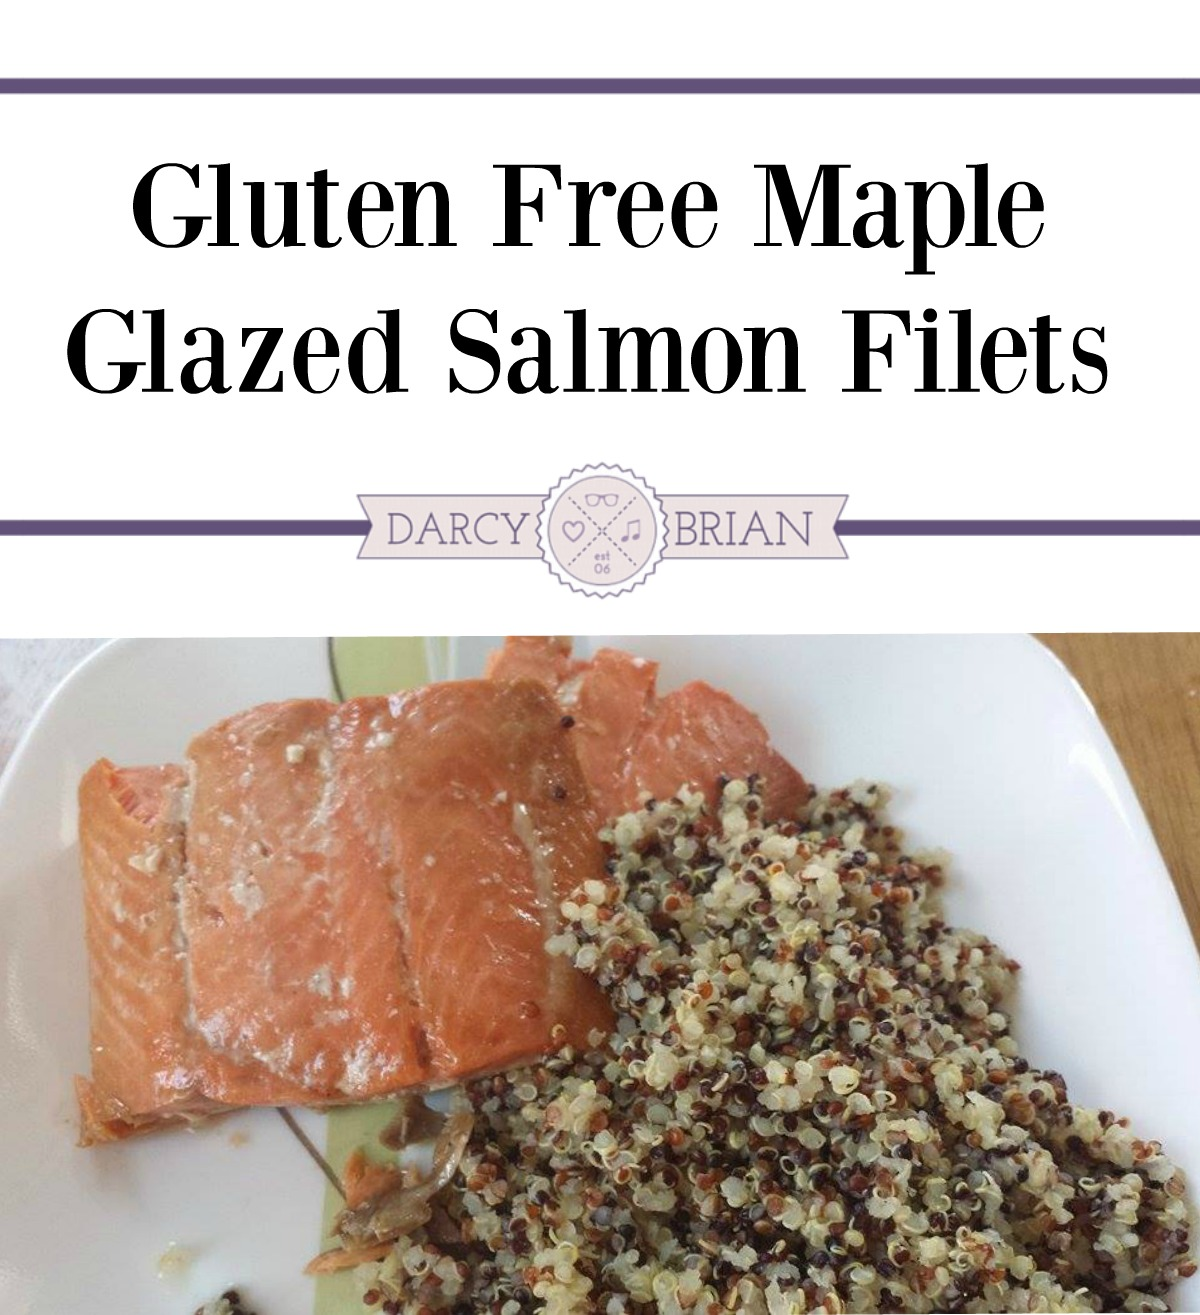 Make this delicious Maple Glazed Salmon Filets Recipe in under 30 minutes for a great Gluten Free meal the entire family will enjoy!